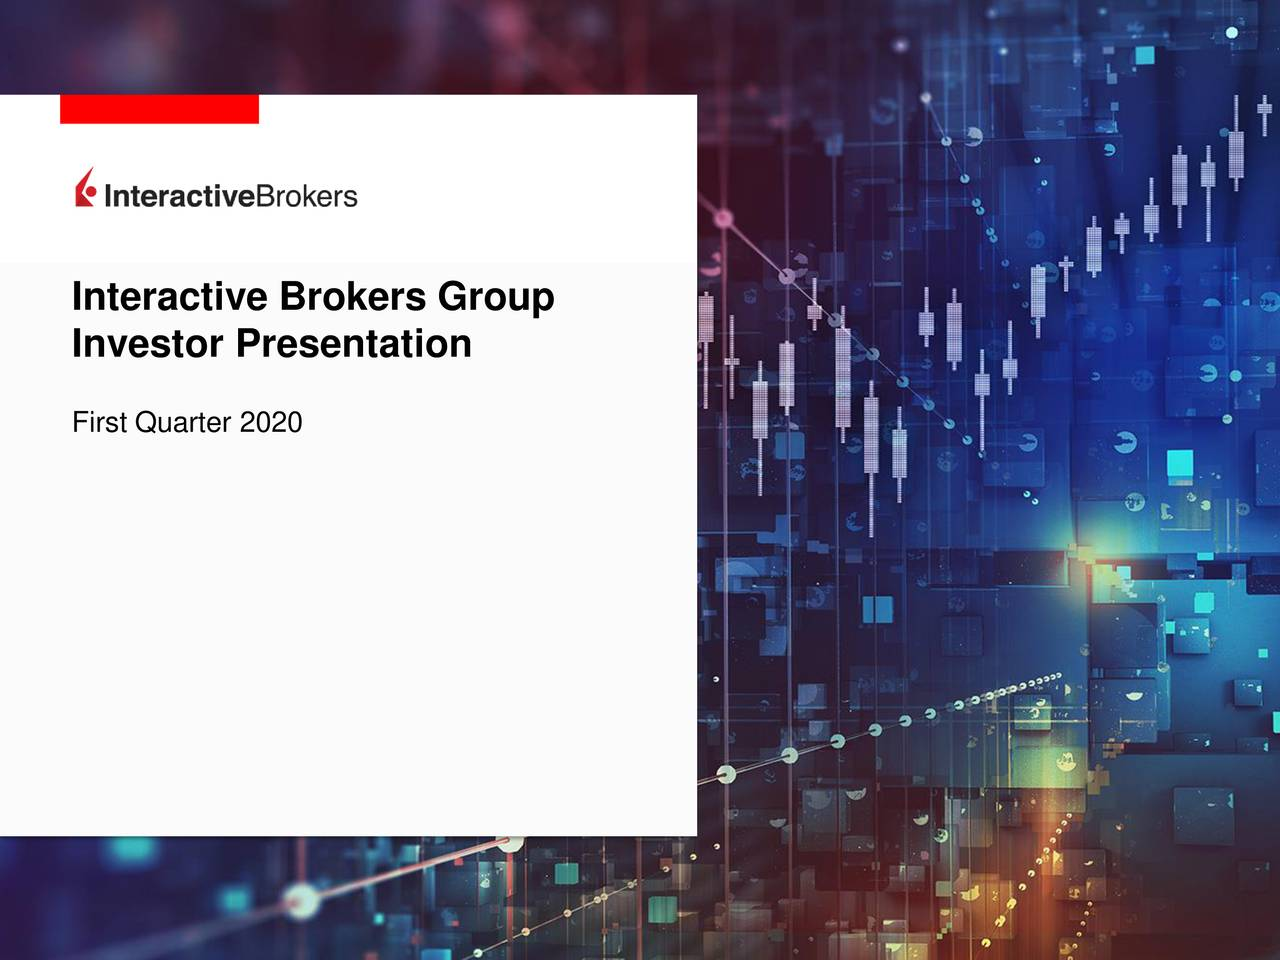 Interactive Brokers (IBKR) Presents At Piper Sandler Global Exchange & FinTech Virtual Conference - Slideshow (NASDAQ:IBKR)